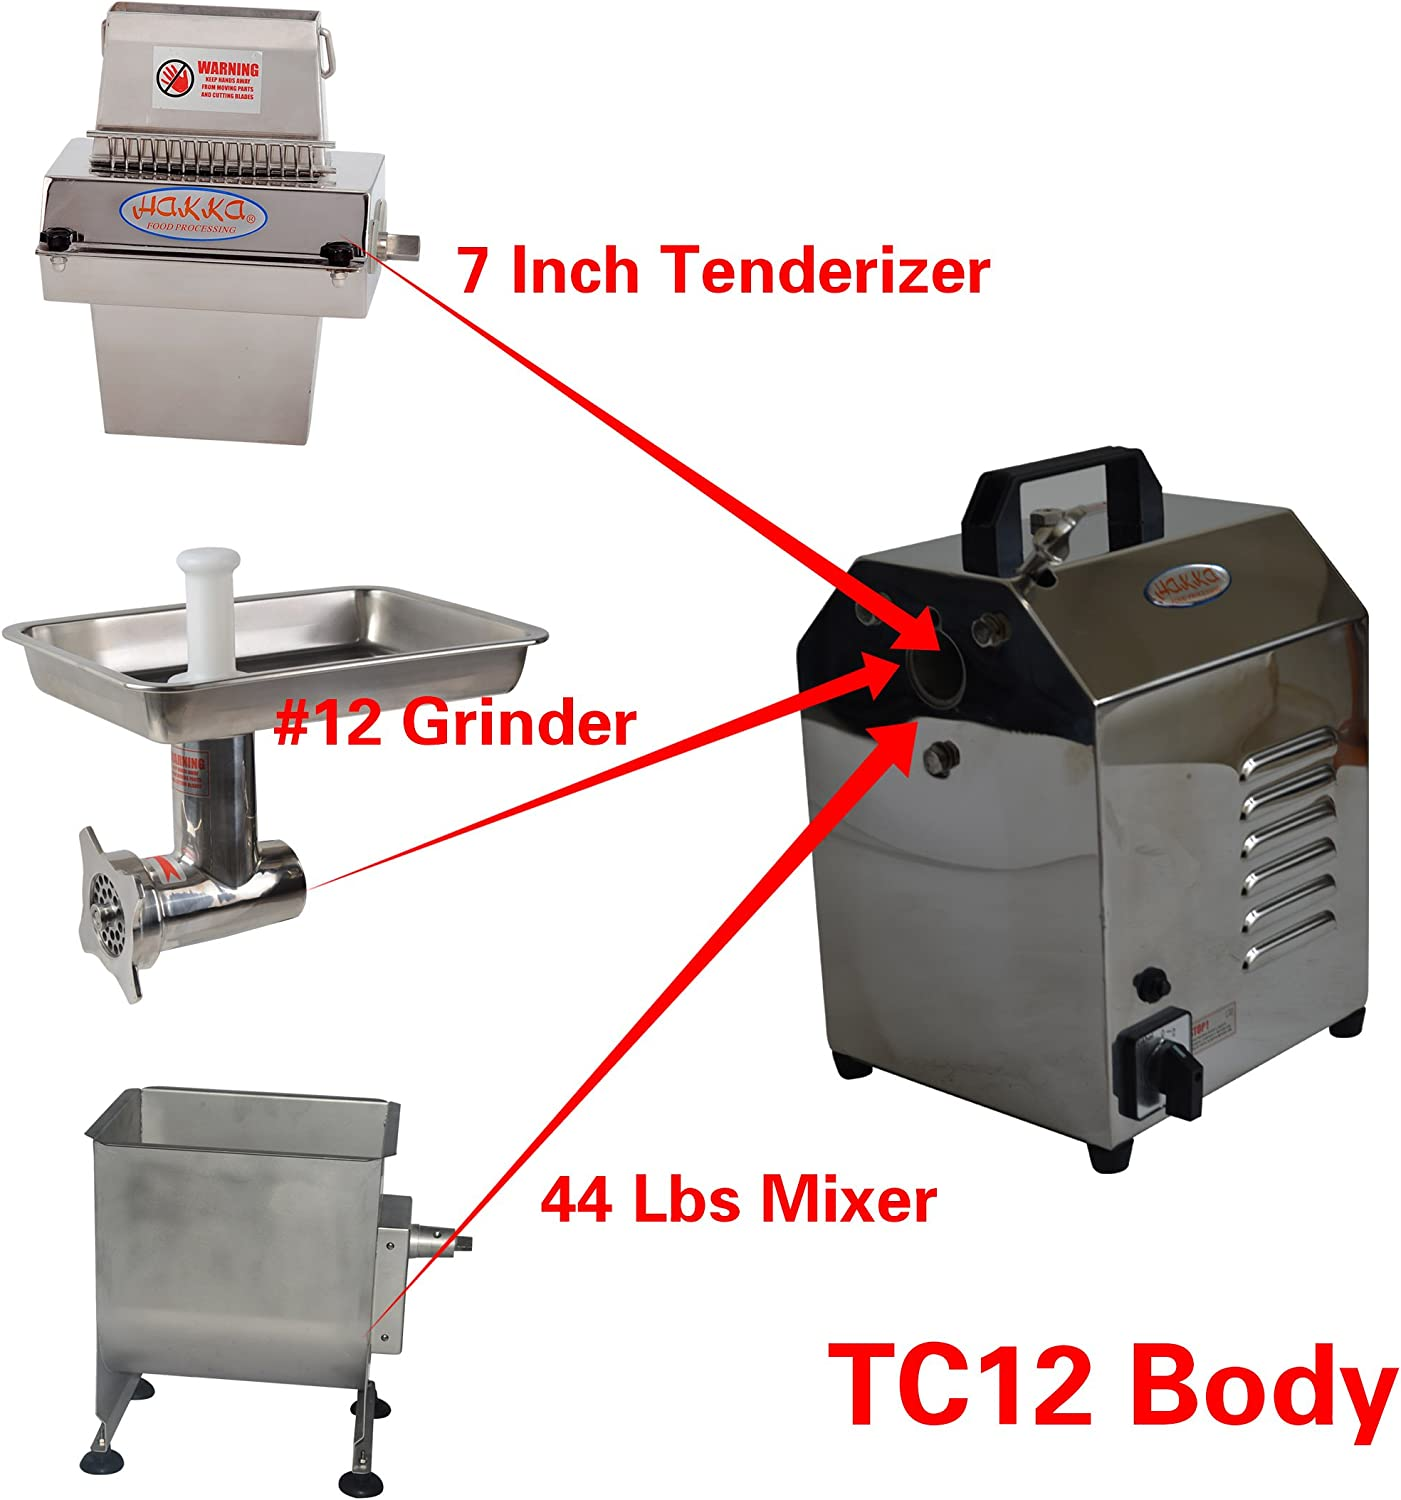 Hakka Meat Processing Machines Commercial Multi-functional Stainless Steel Electric Meat Processor Equipments TC12-TS737-FME02